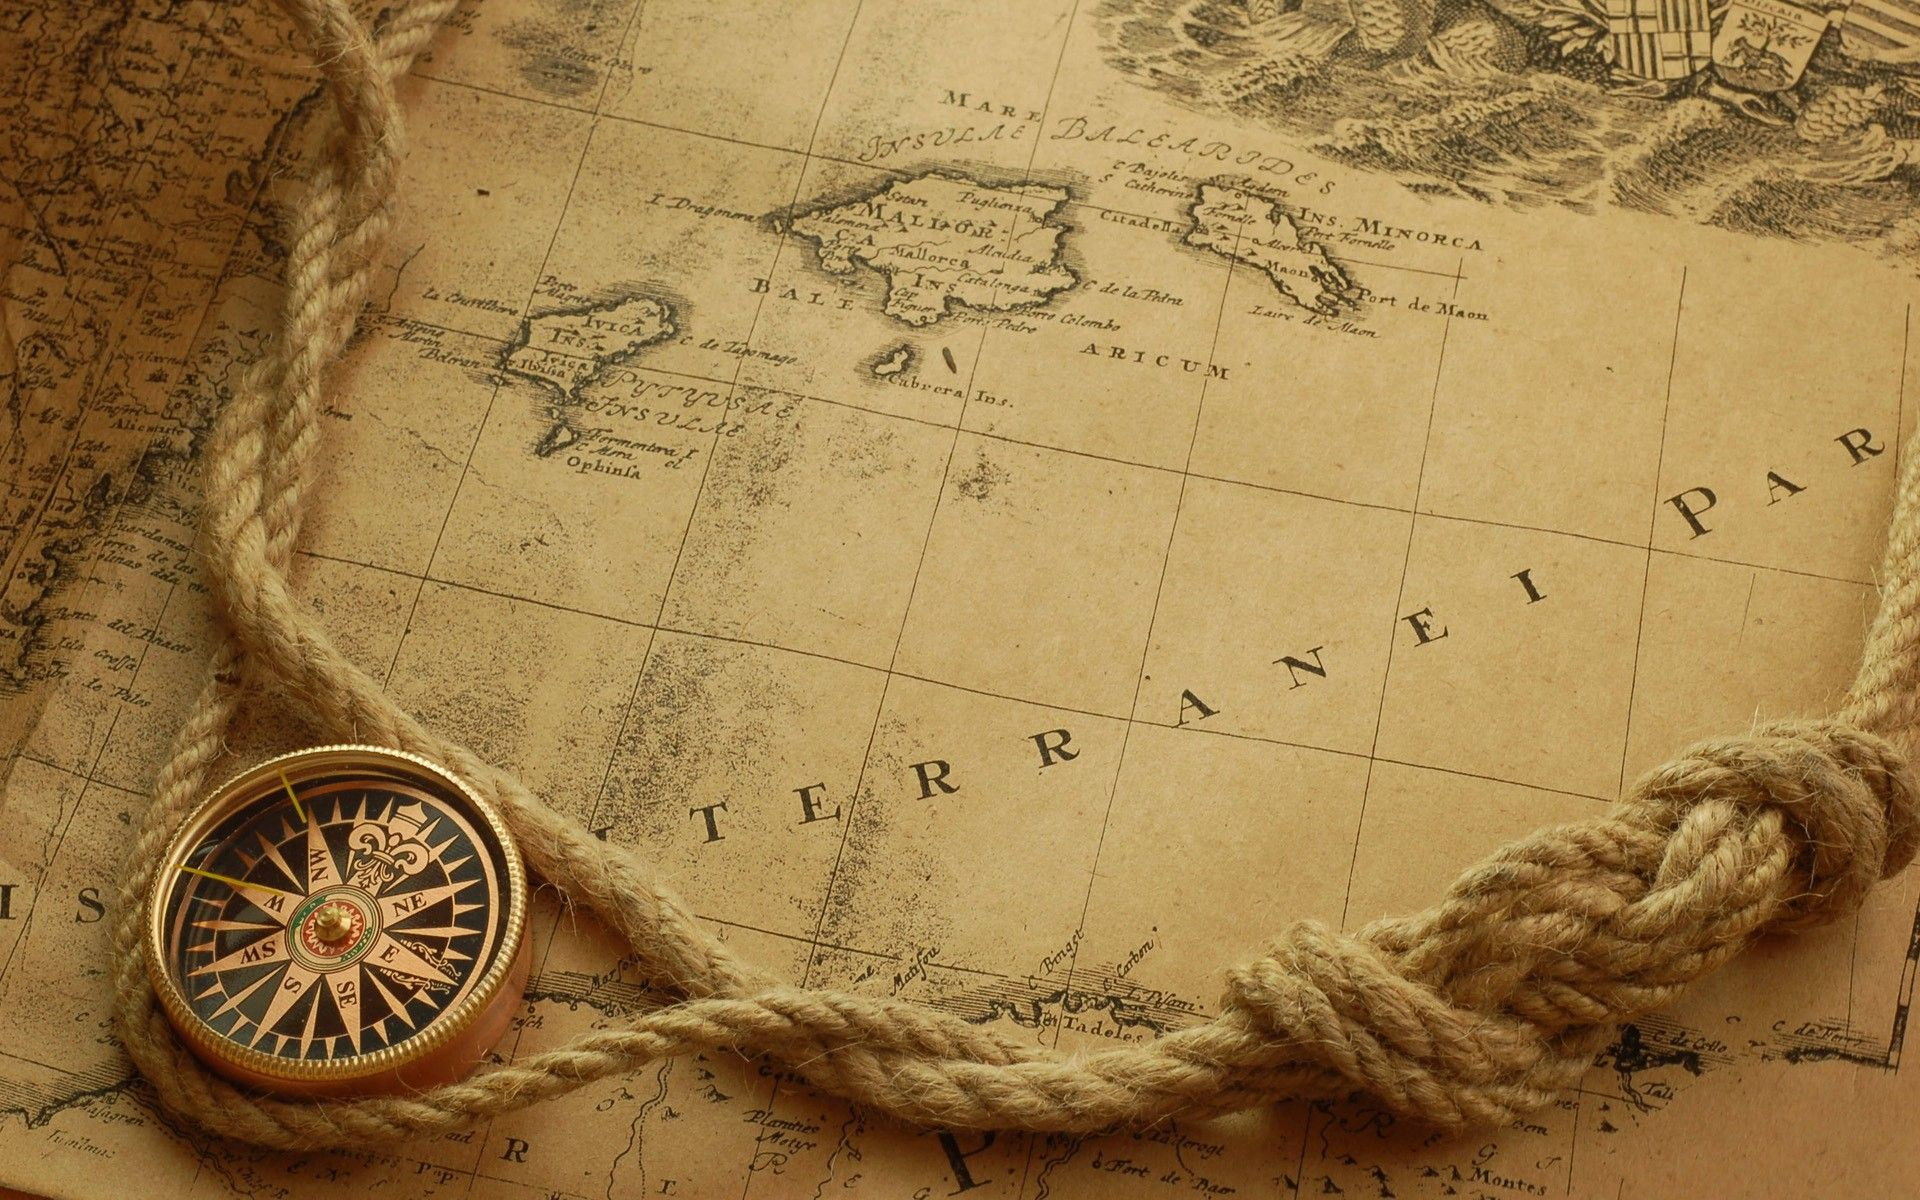 Ancient map map compass old ancient 1920x1200 How I Like It in 1920x1200